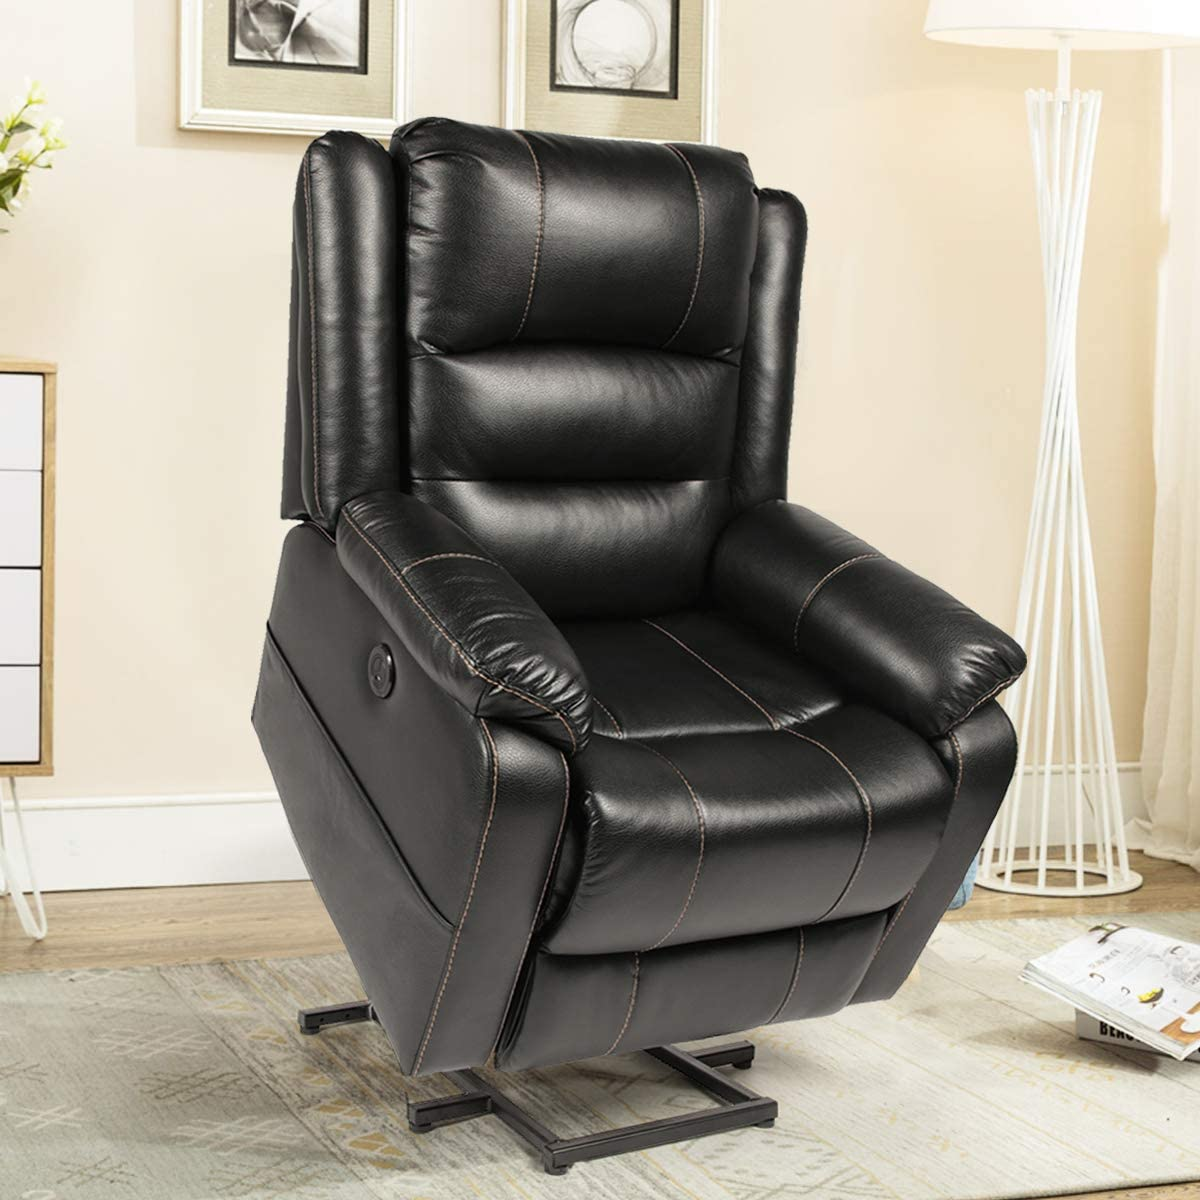 Esright Power Lift Chair Faux Leather Electric Recliner for Elderly, Heated Vibration Massage Sofa with Side Pockets, USB Charge Port Remote Control, Black